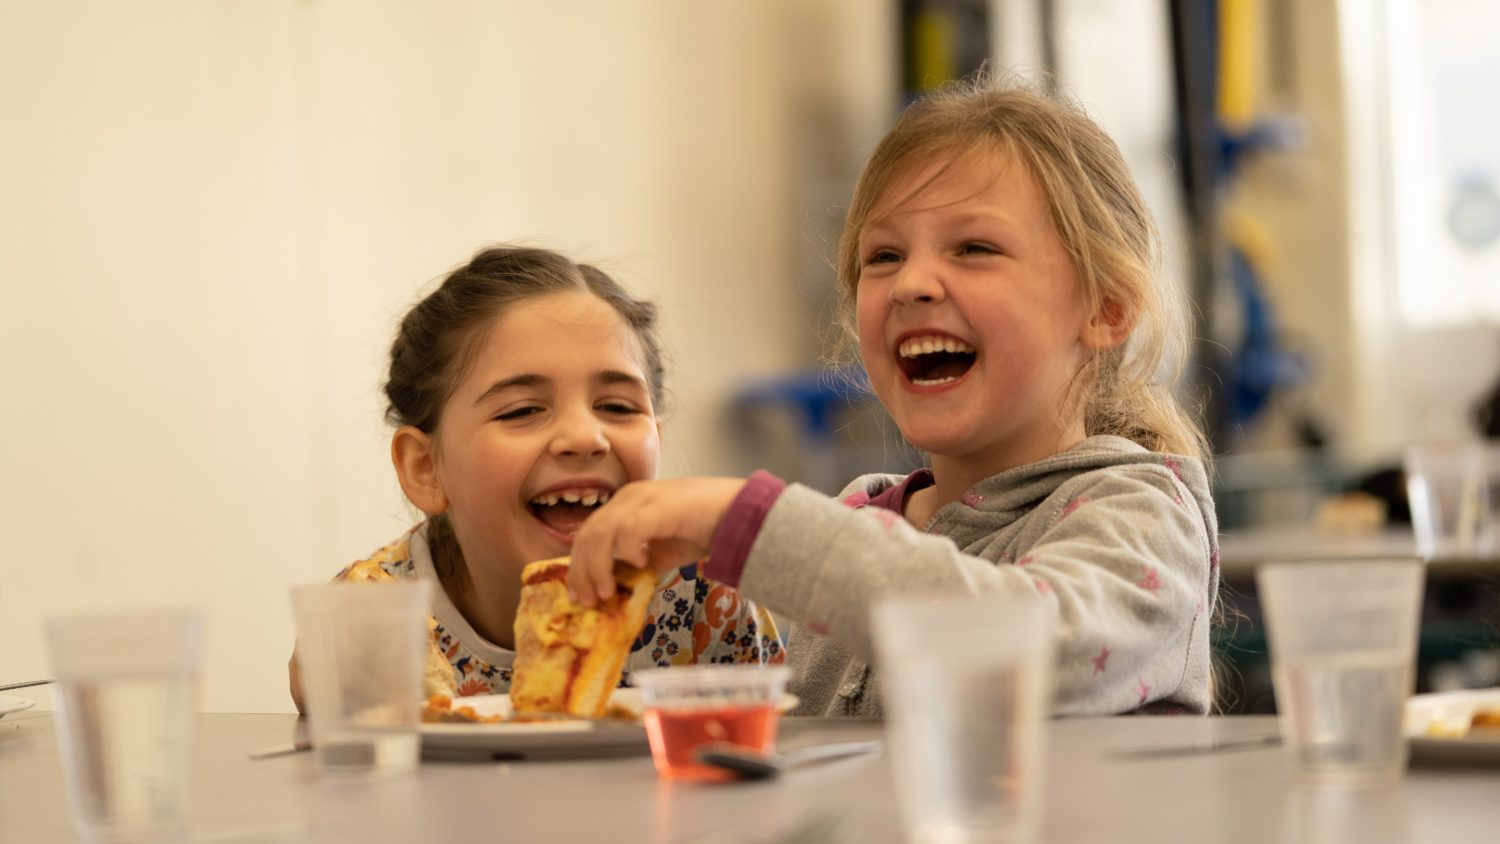 Two students enjoying their lunch